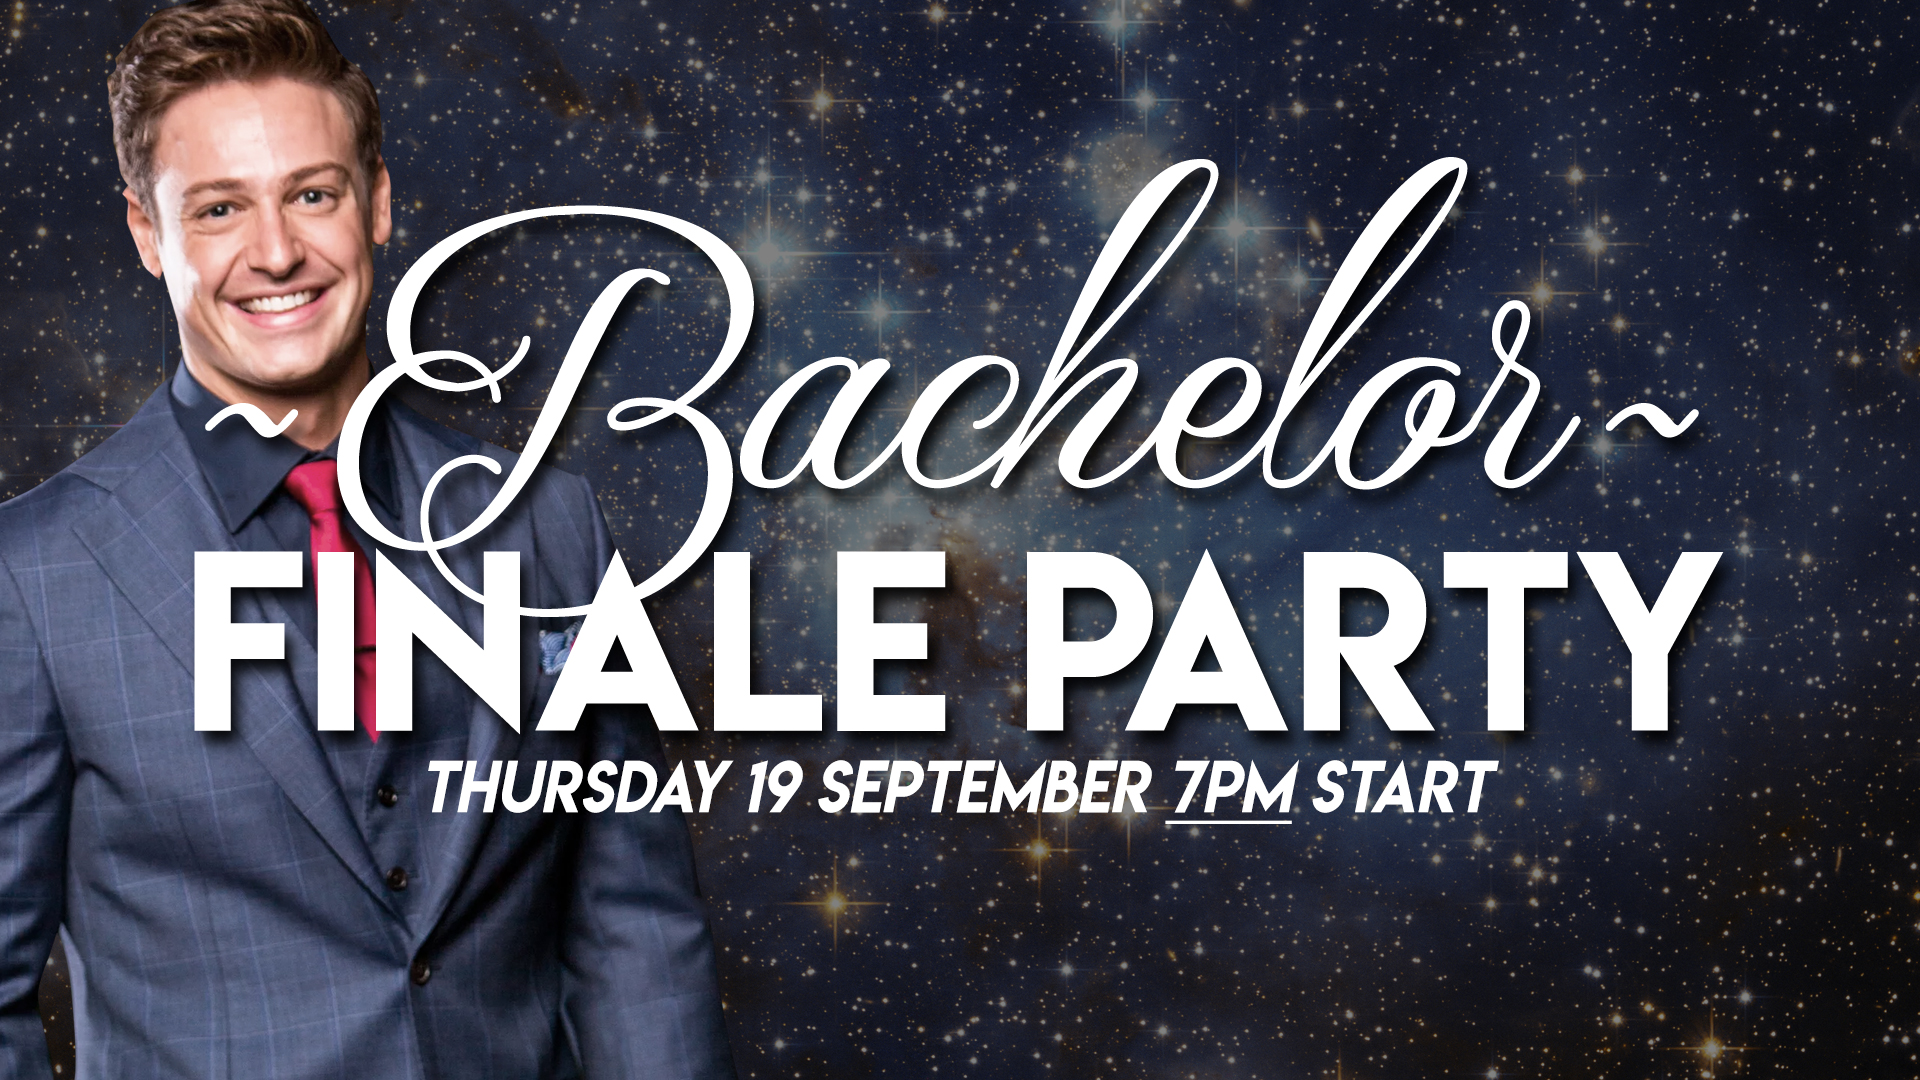 PAs-Bachelor-Final-Party-Facebook.jpg